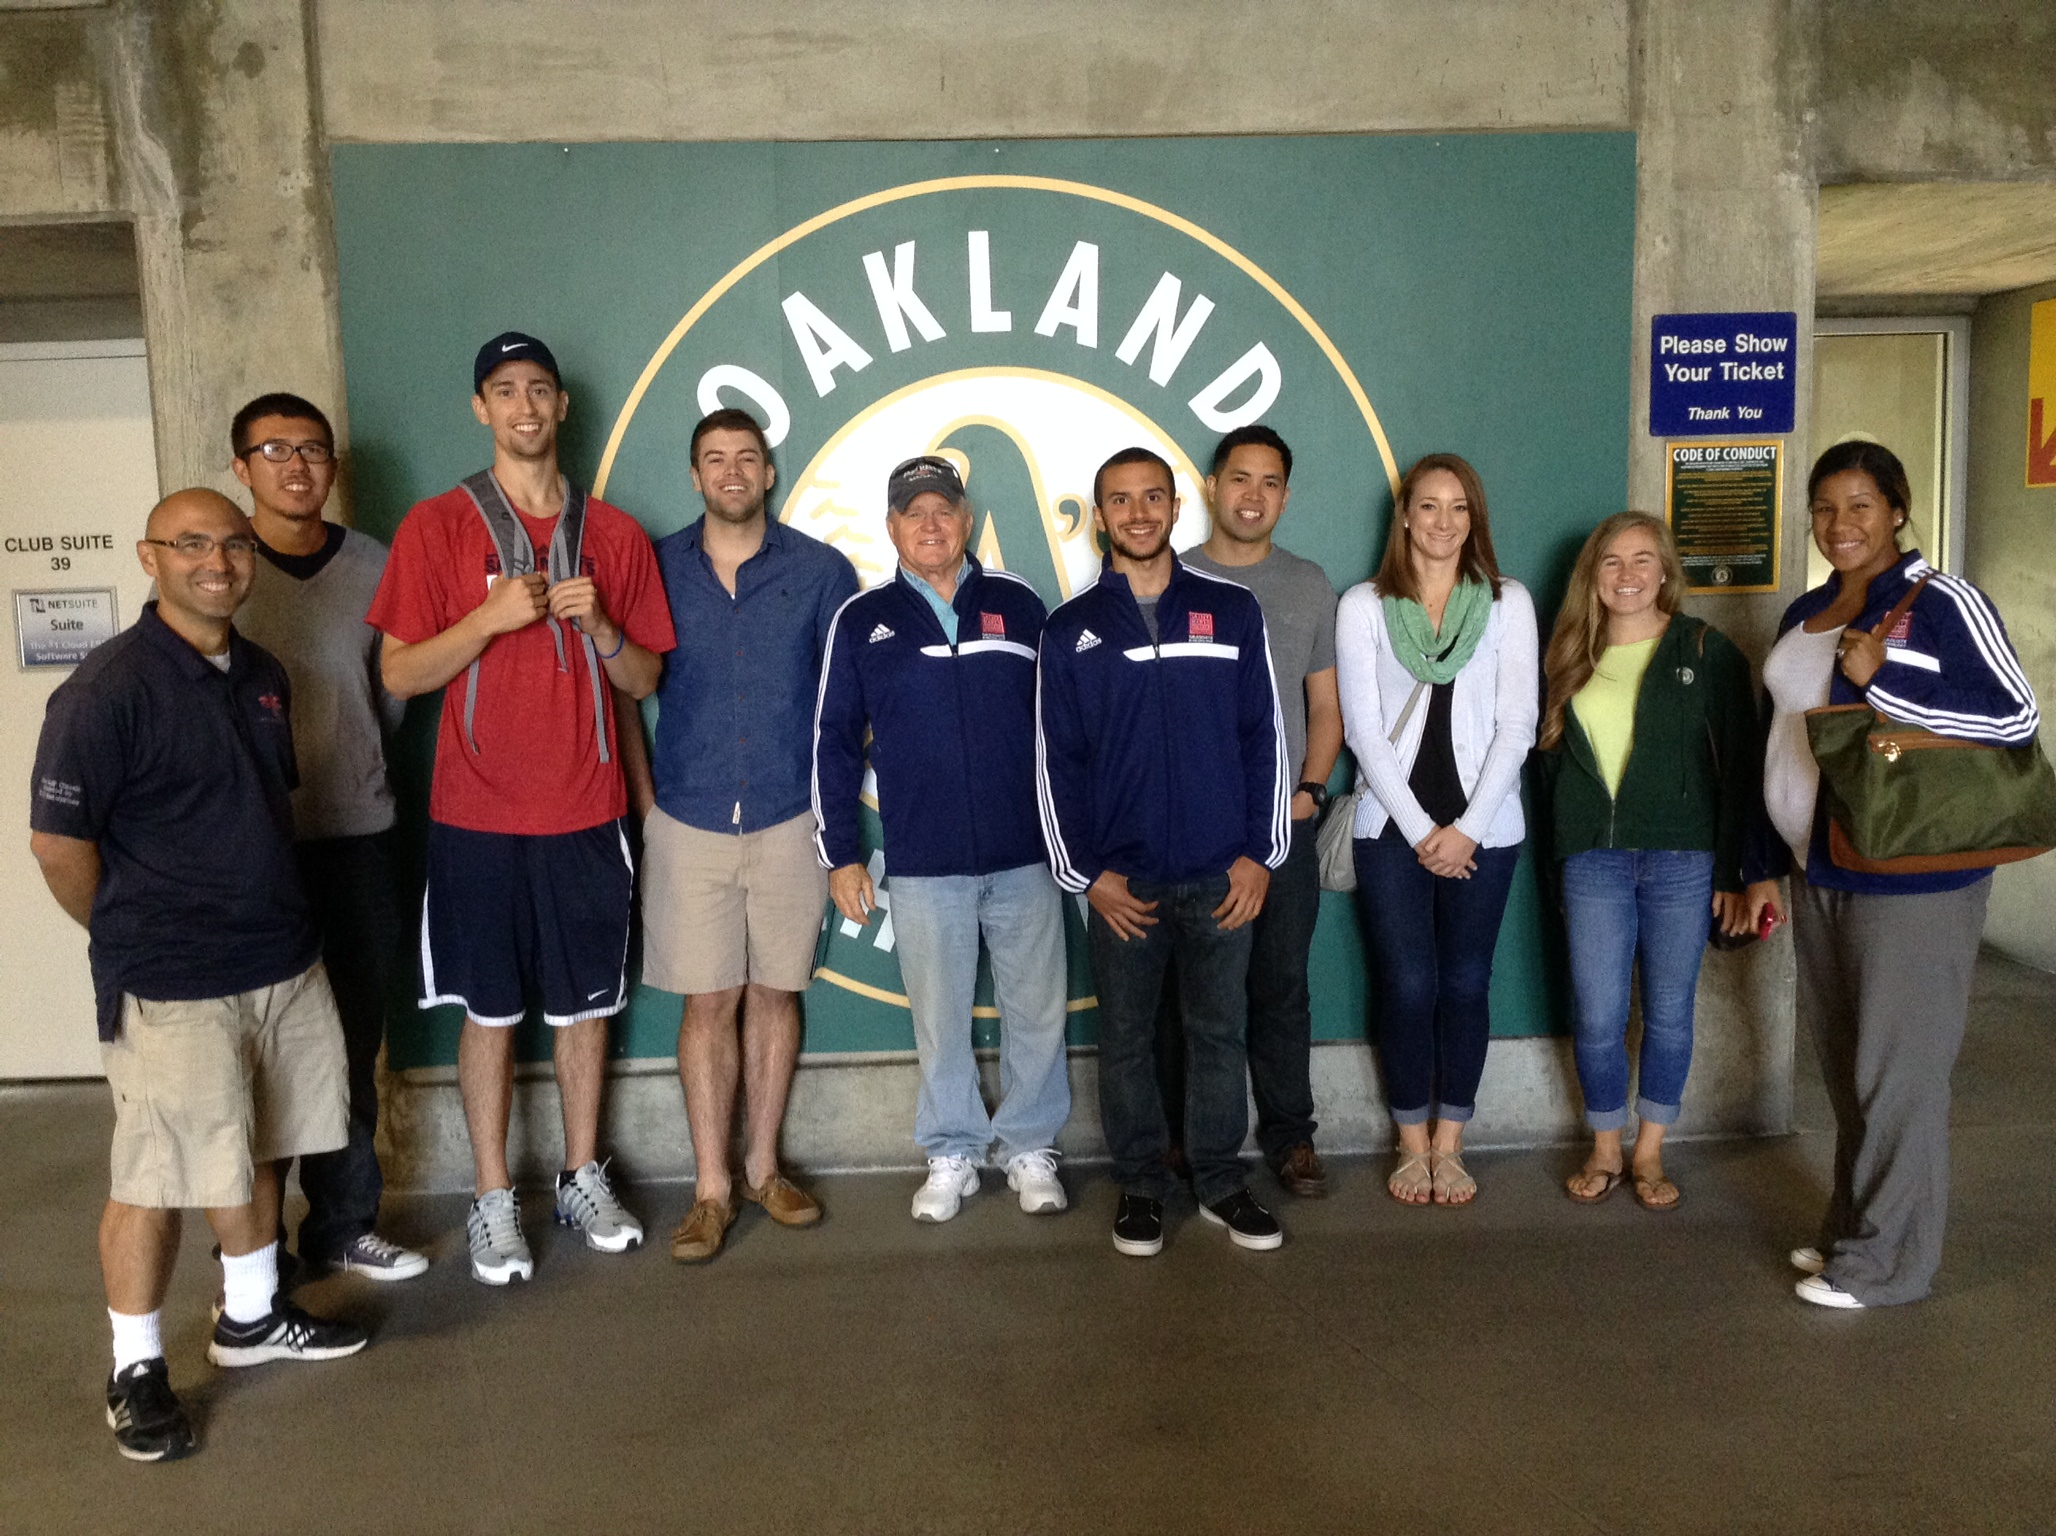 KINES 374 Trip to the Oakland Coliseum